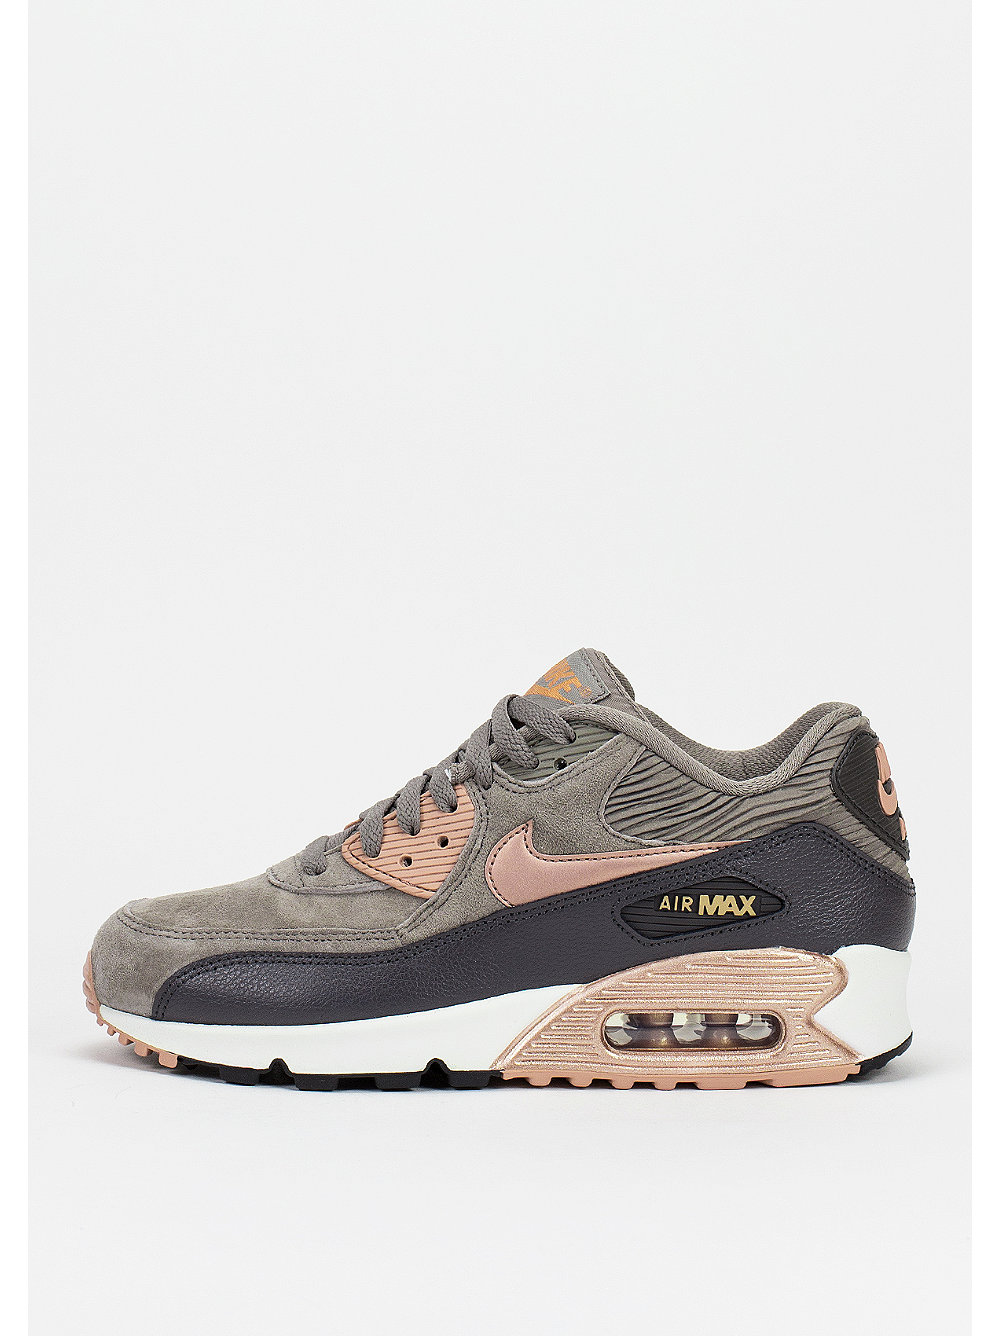 air max 90 damen grau bronze